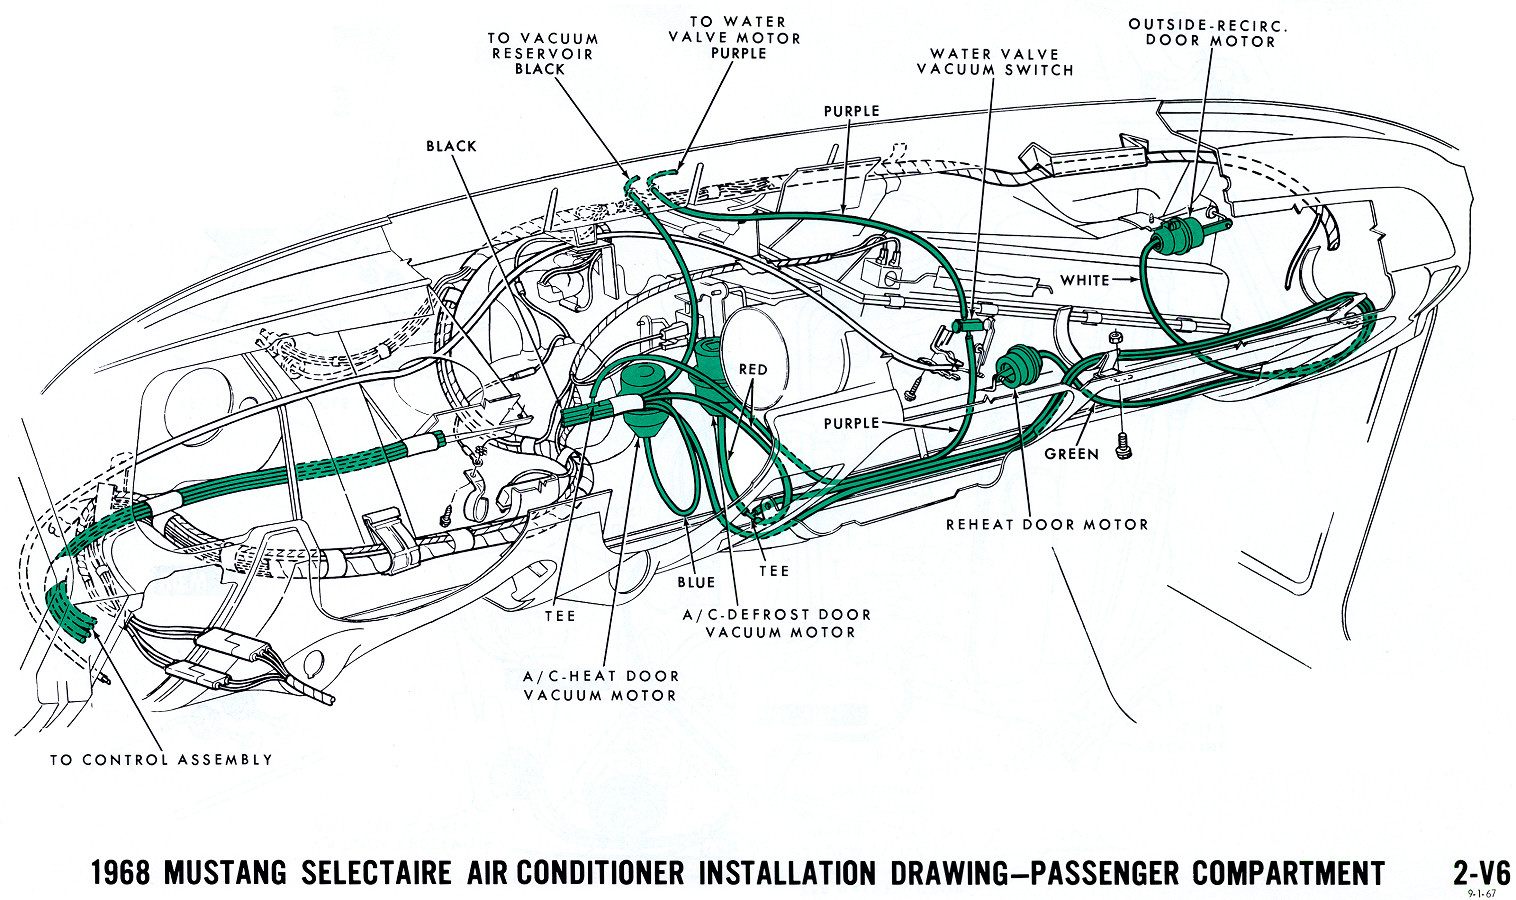 1968 mustang vacuum diagram air conditioning interior 68 mustang dash wiring diagram wiring library